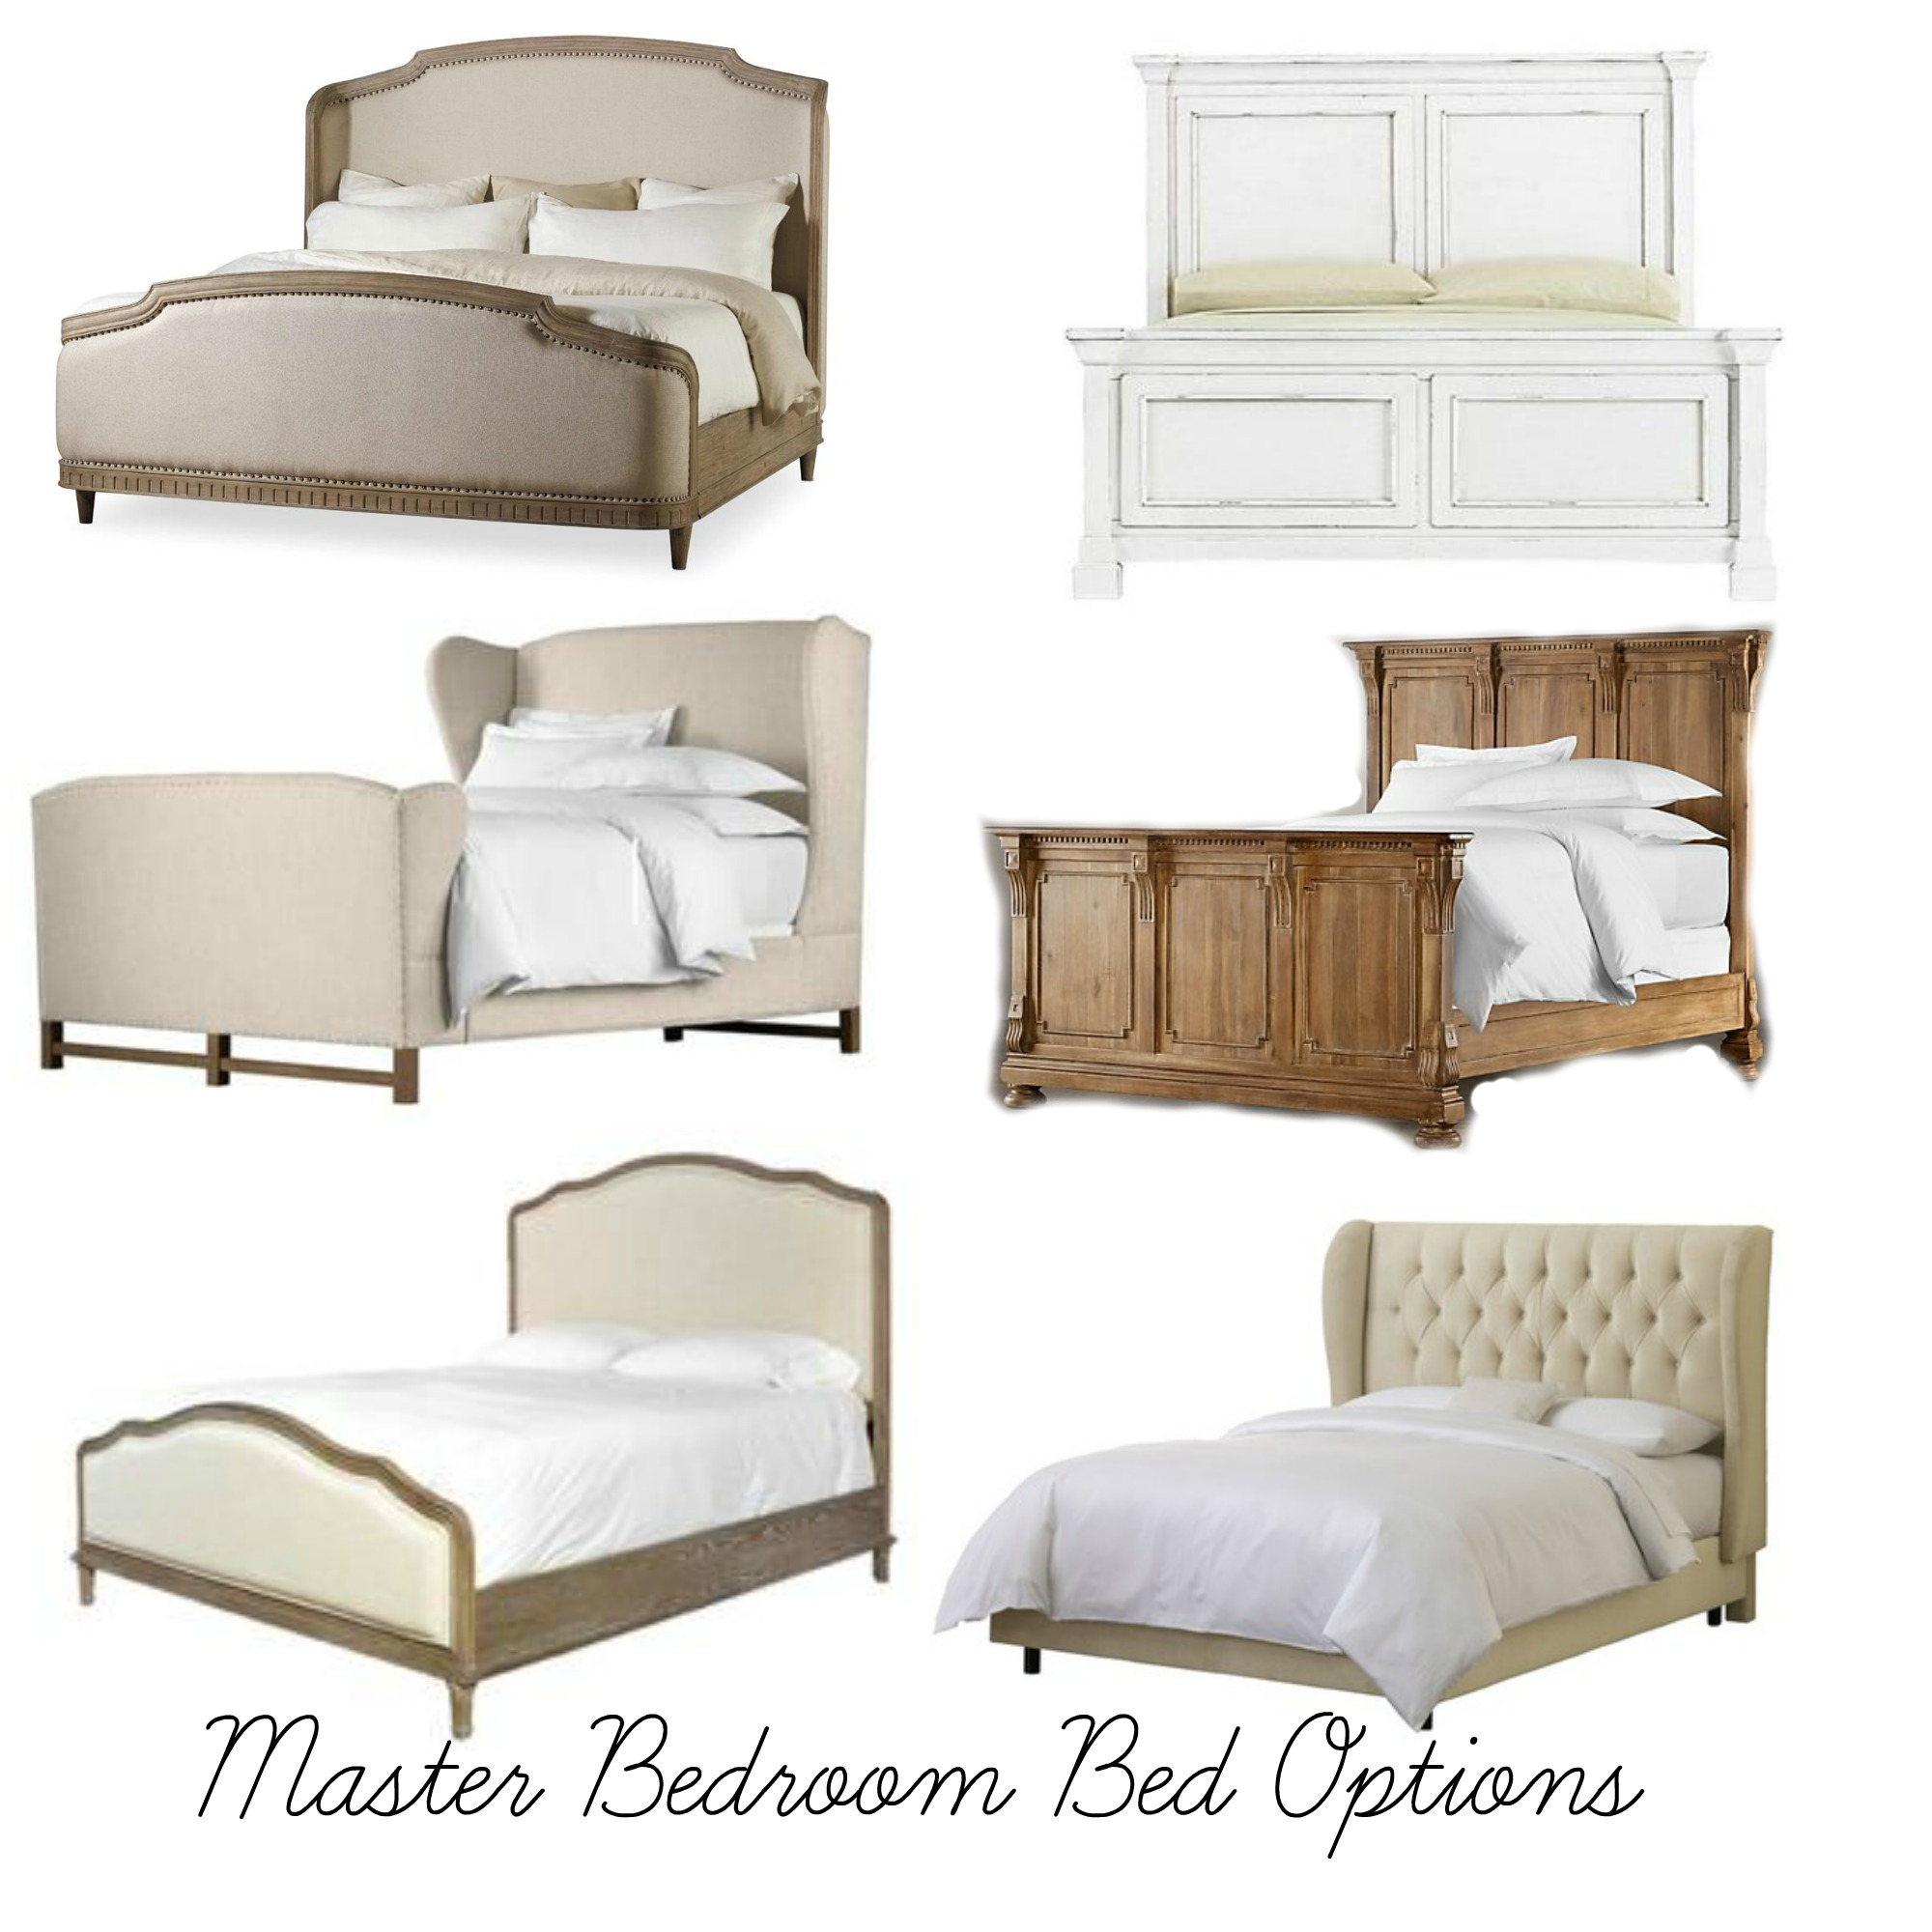 Master Bedroom Bed Options- Plum Pretty Decor and Design